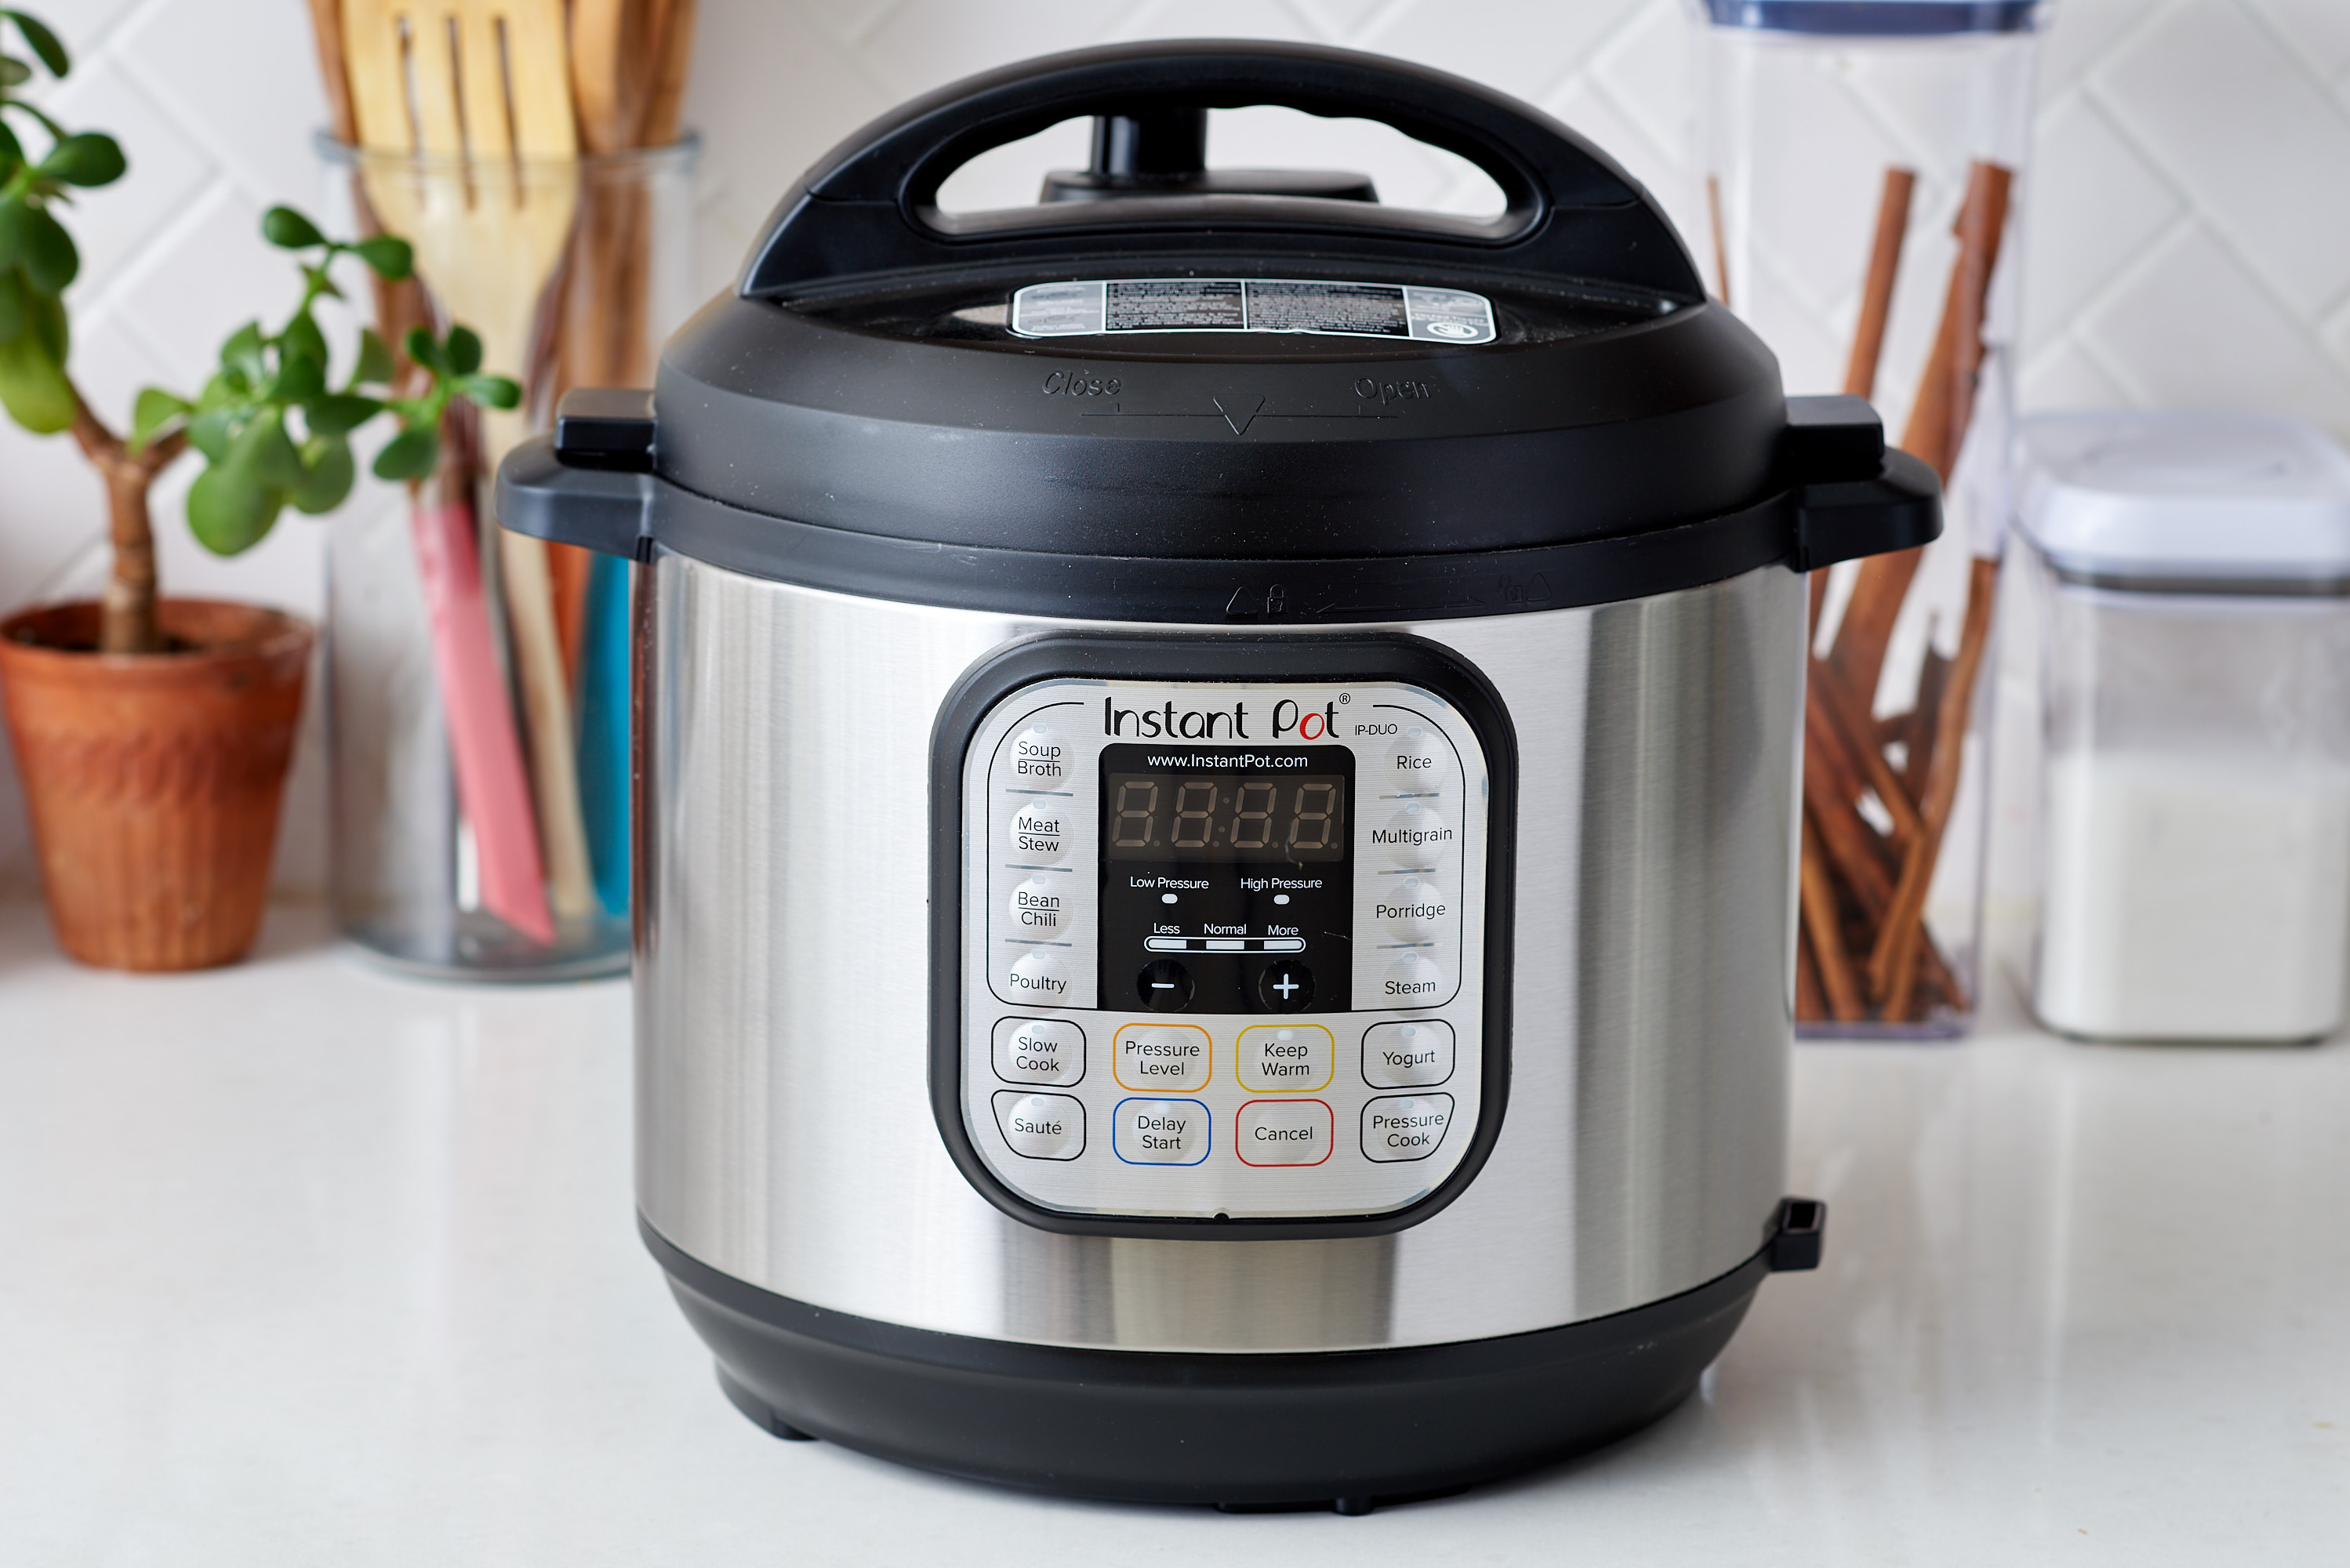 All the Things We've Learned About the Instant Pot Since Writing About It in 2015